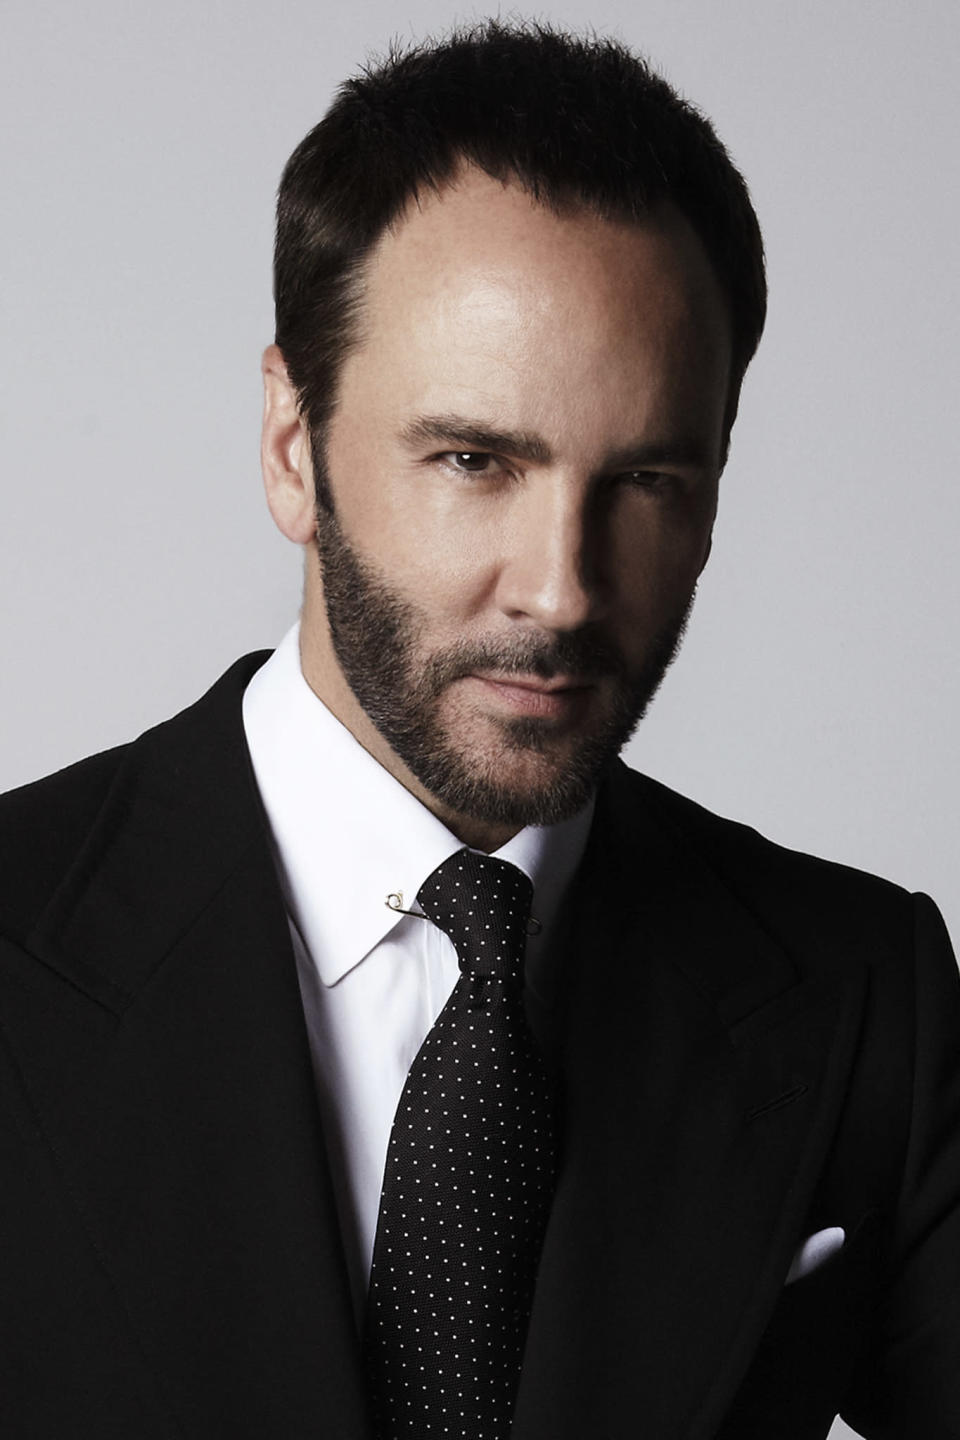 Tom Ford - Credit: Courtesy of Tom Ford